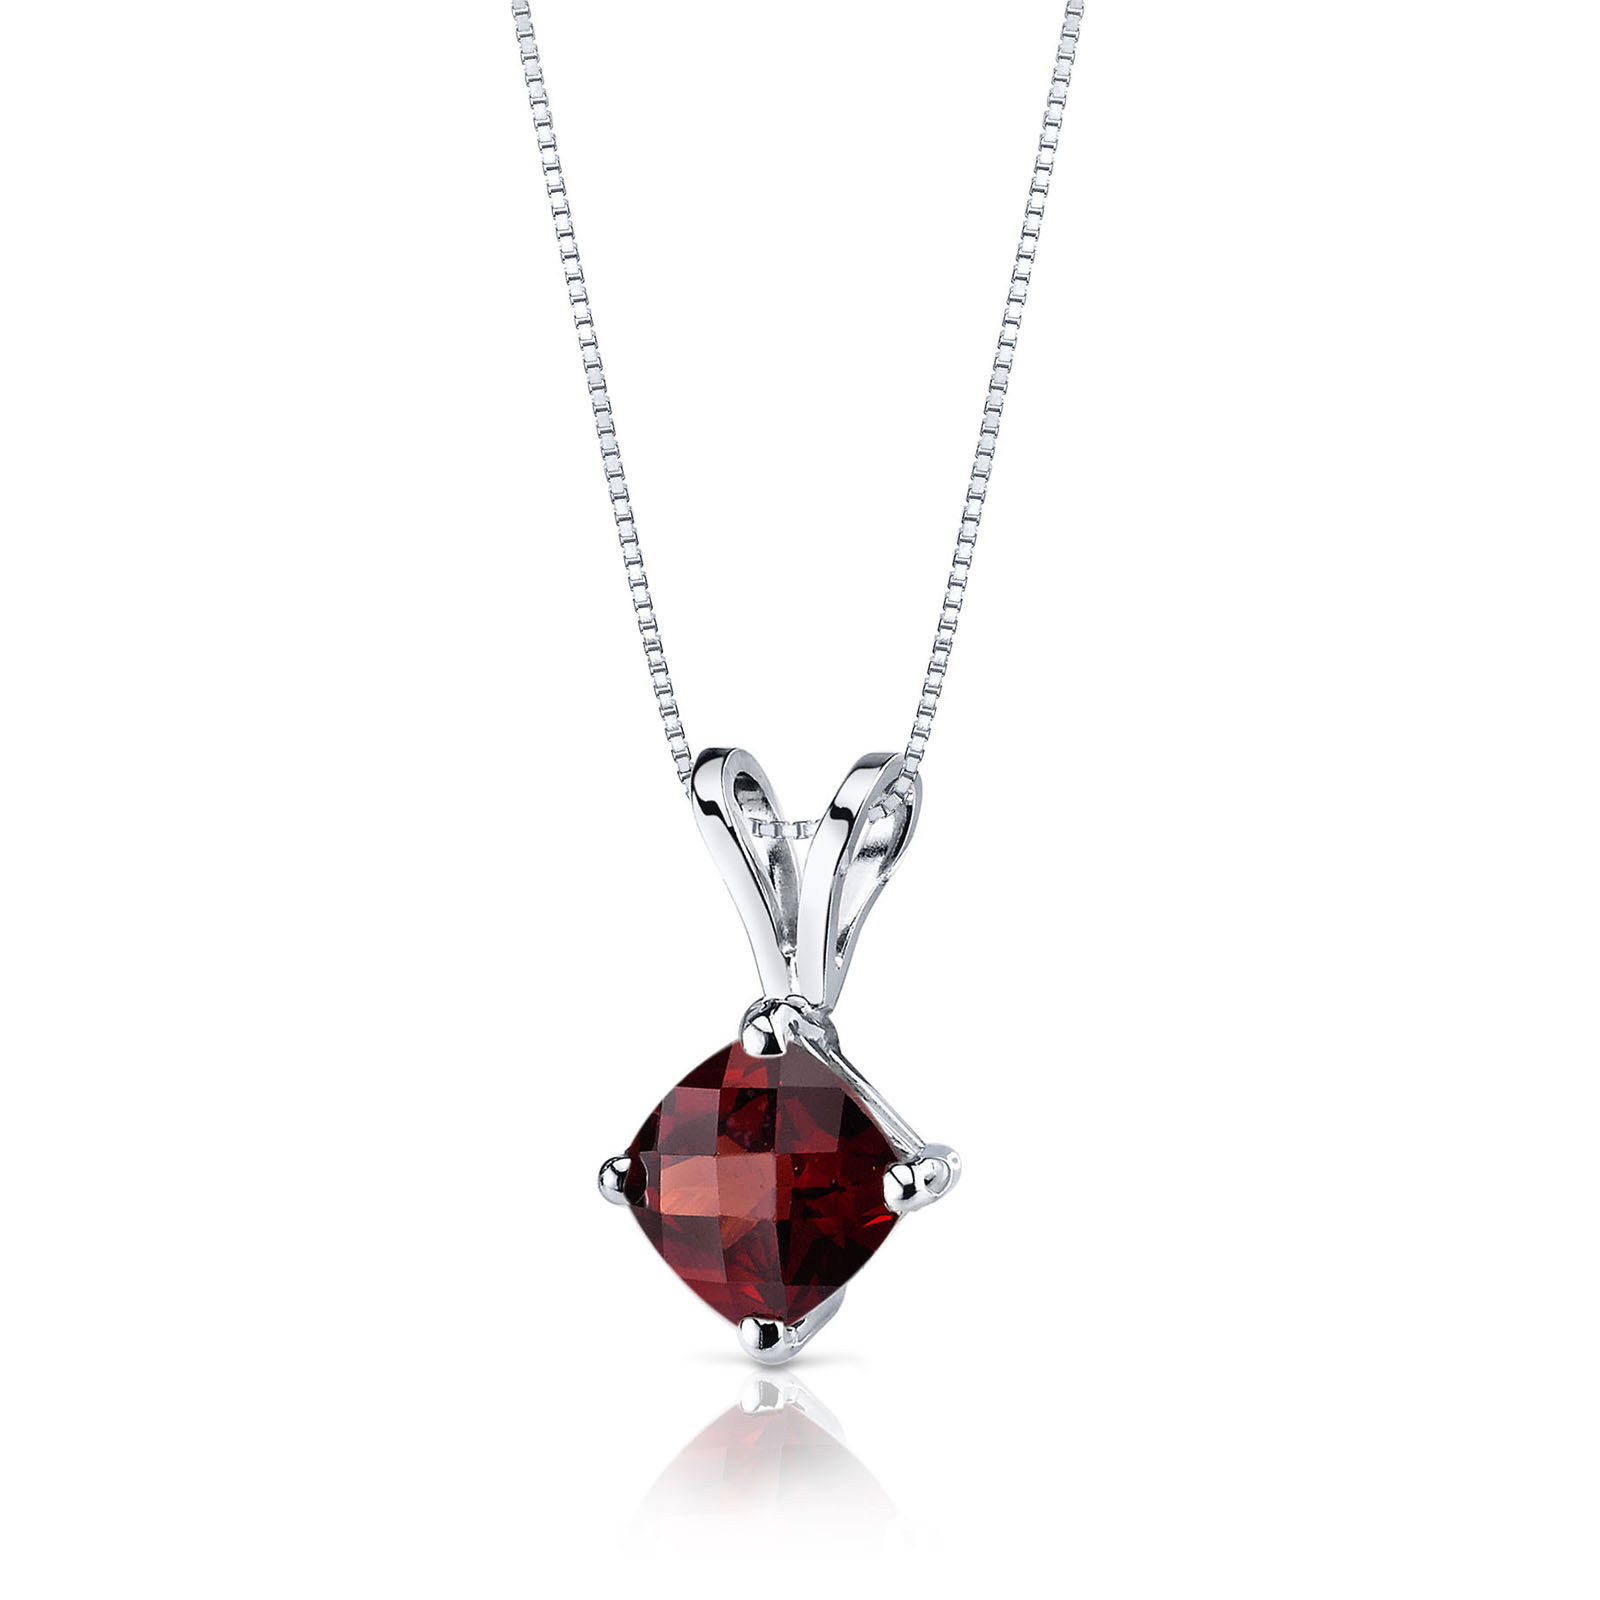 Cushion Cut Garnet 9ct White Gold Pendant Necklace with Silver Chain